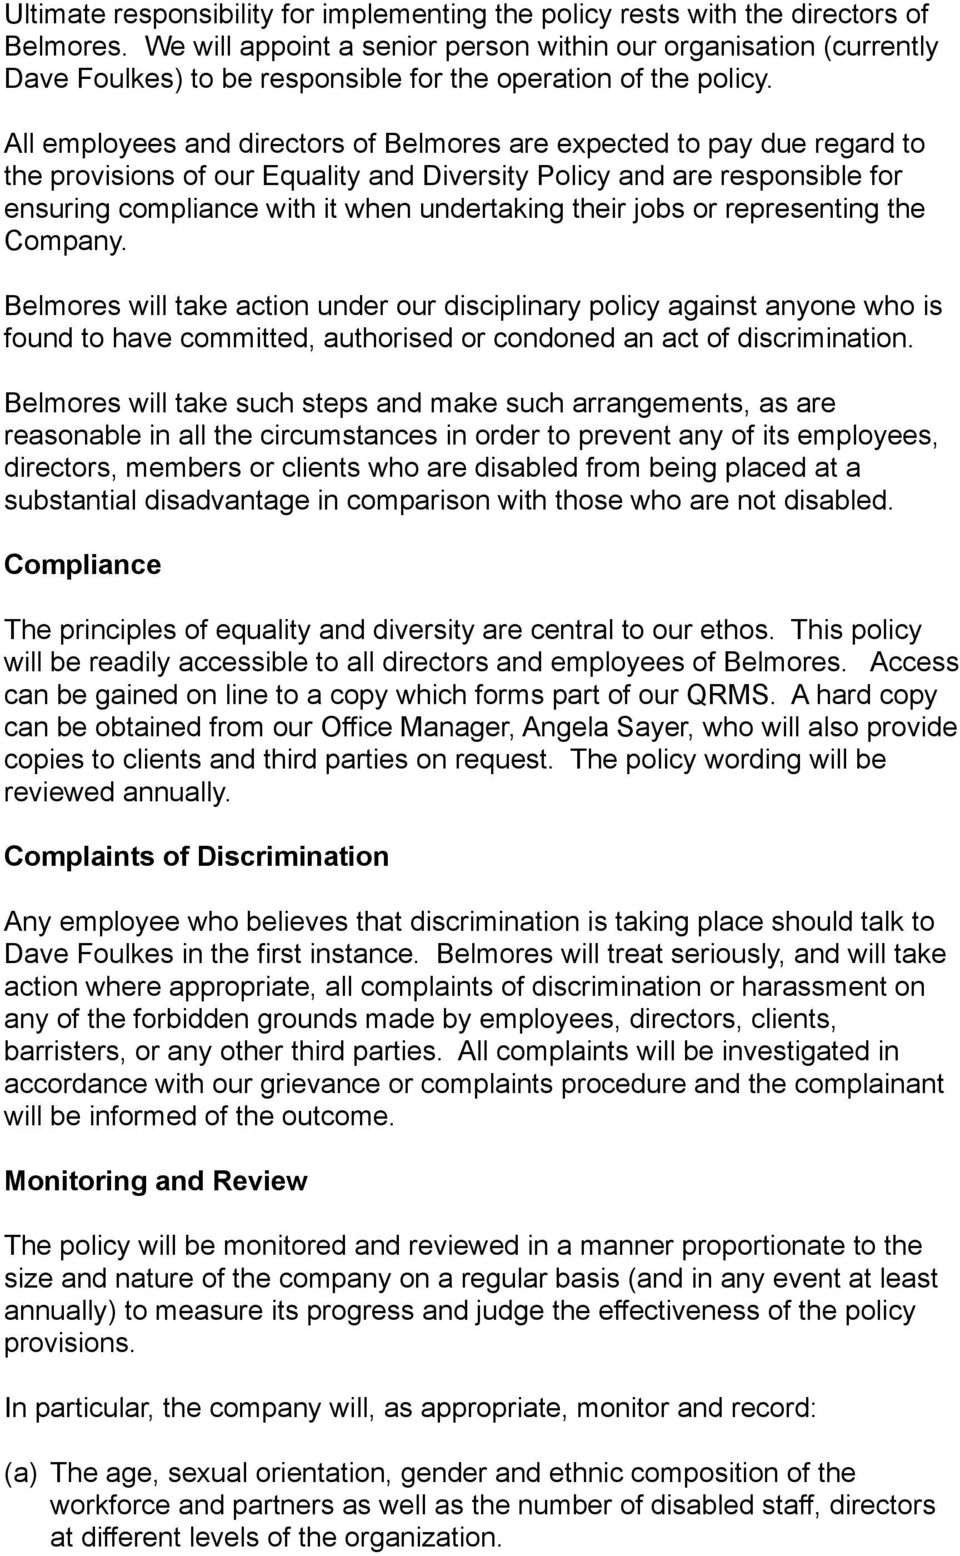 All employees and directors of Belmores are expected to pay due regard to the provisions of our Equality and Diversity Policy and are responsible for ensuring compliance with it when undertaking